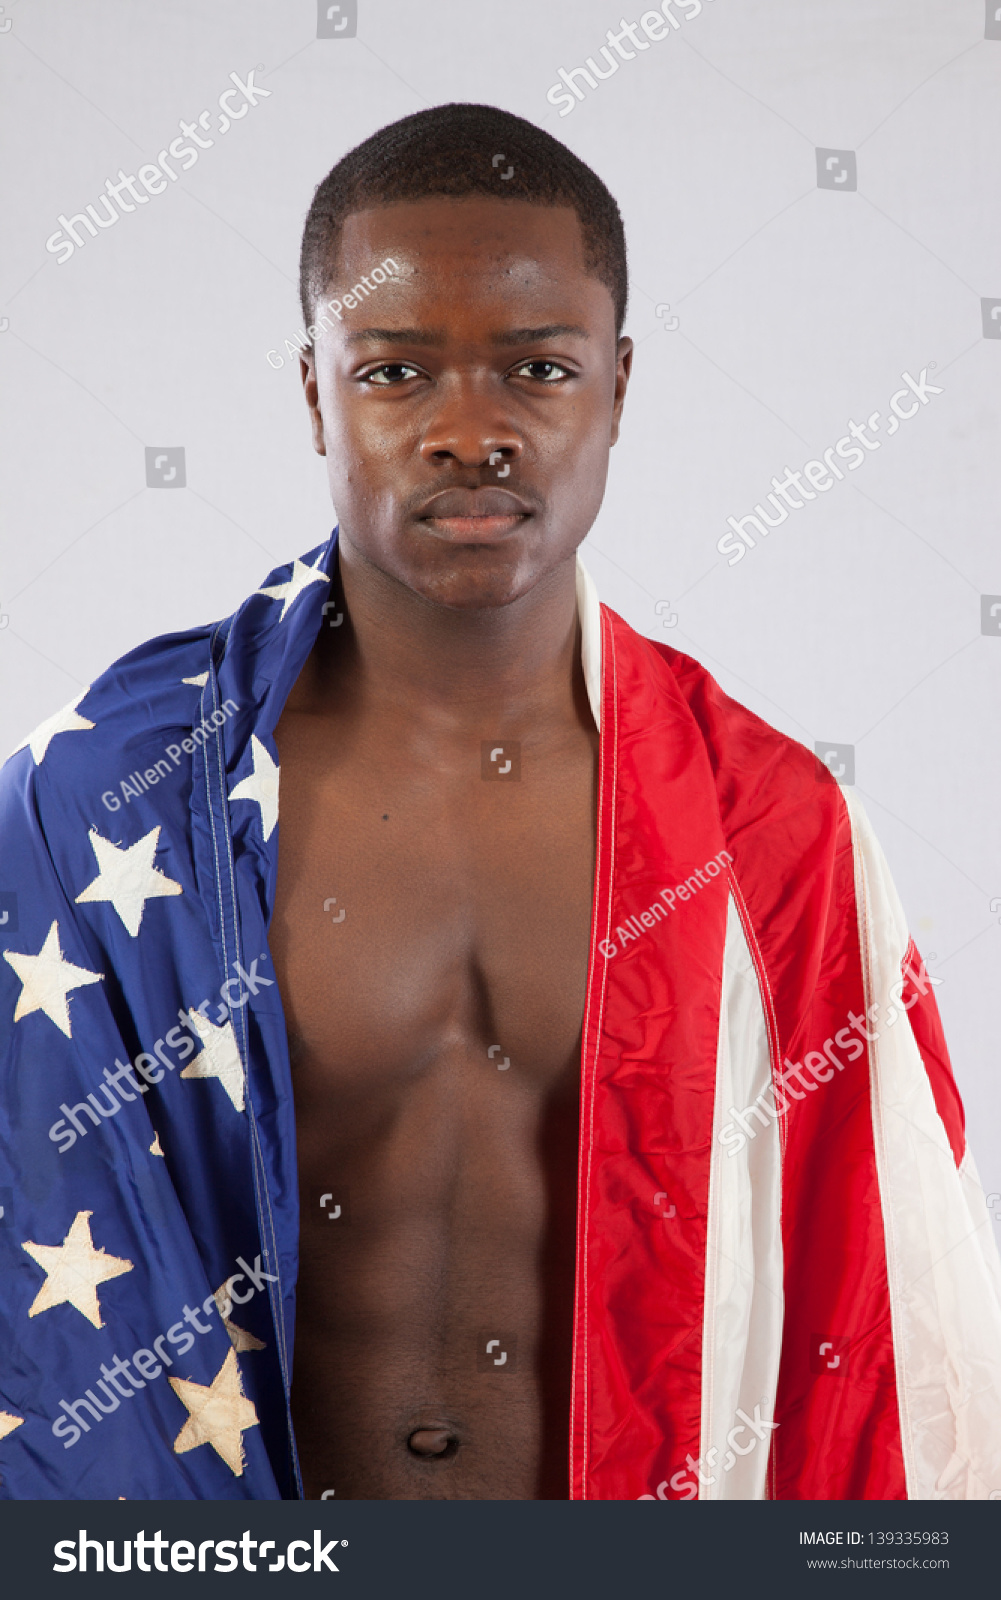 Royalty Free Serious Black Man With No Shirt On 139335983 Stock